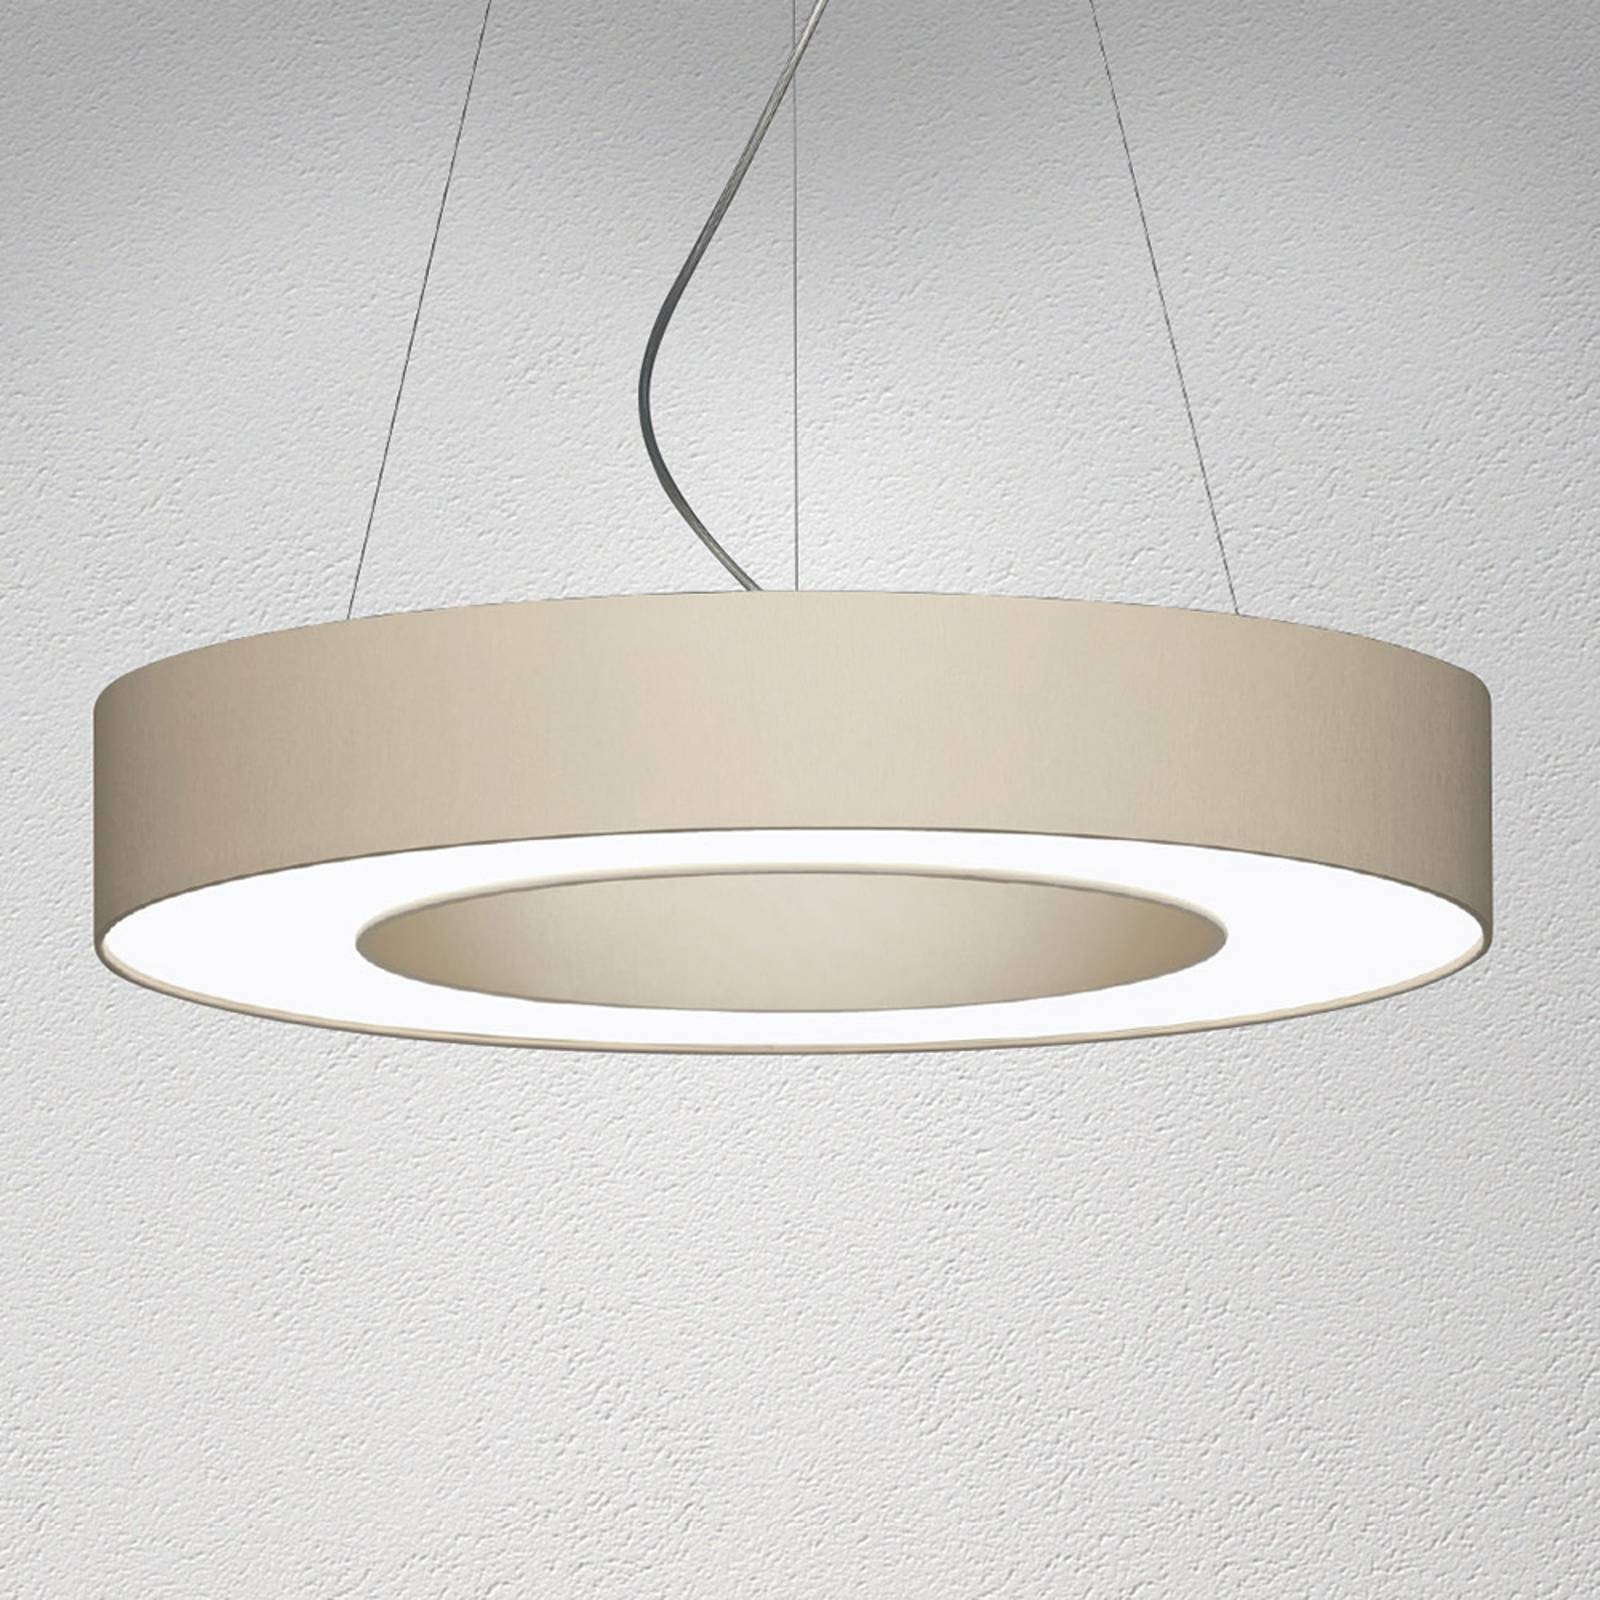 Suspension LED Donut dimmable 22W mélange